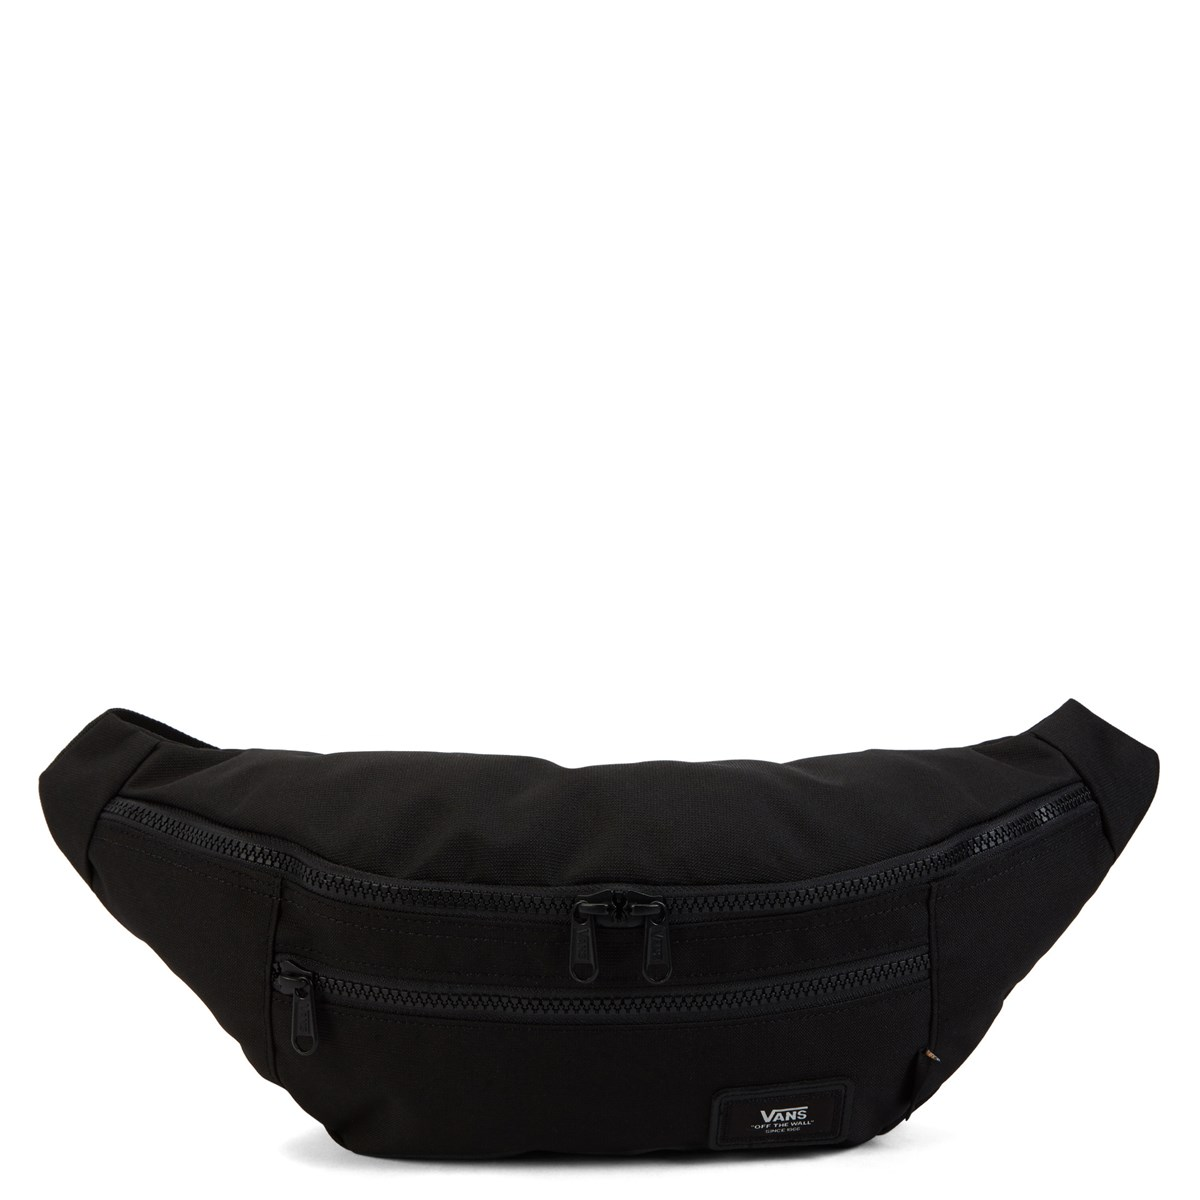 Ward Fanny Pack in Black